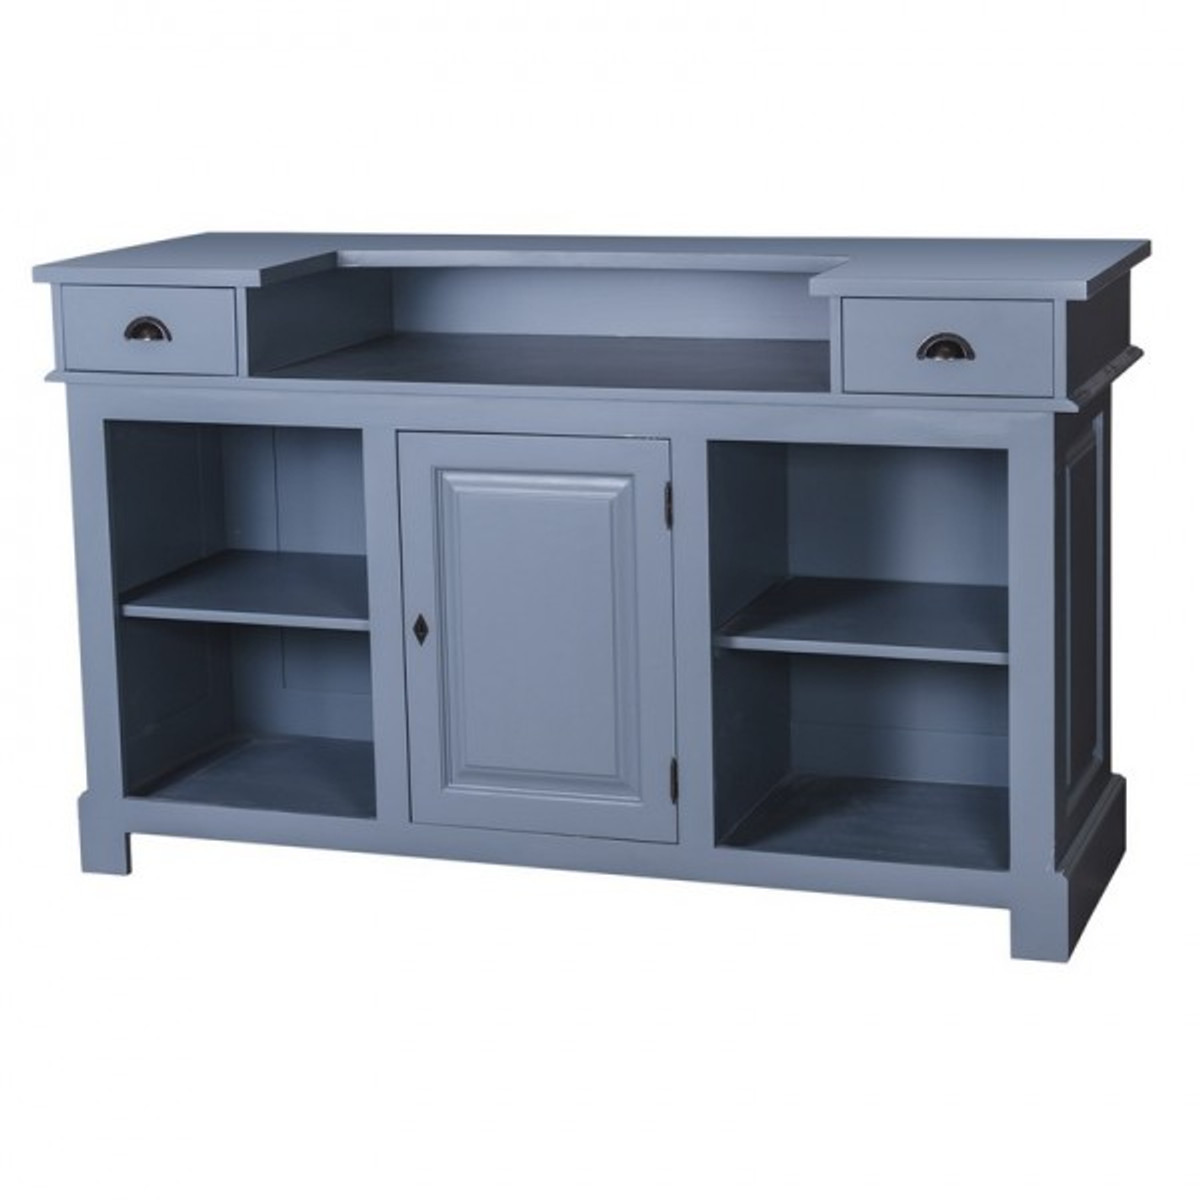 Casa Padrino Nouveau Counters Cabinet 160 Cm Counter Counter Country Style  Store Equipment   All